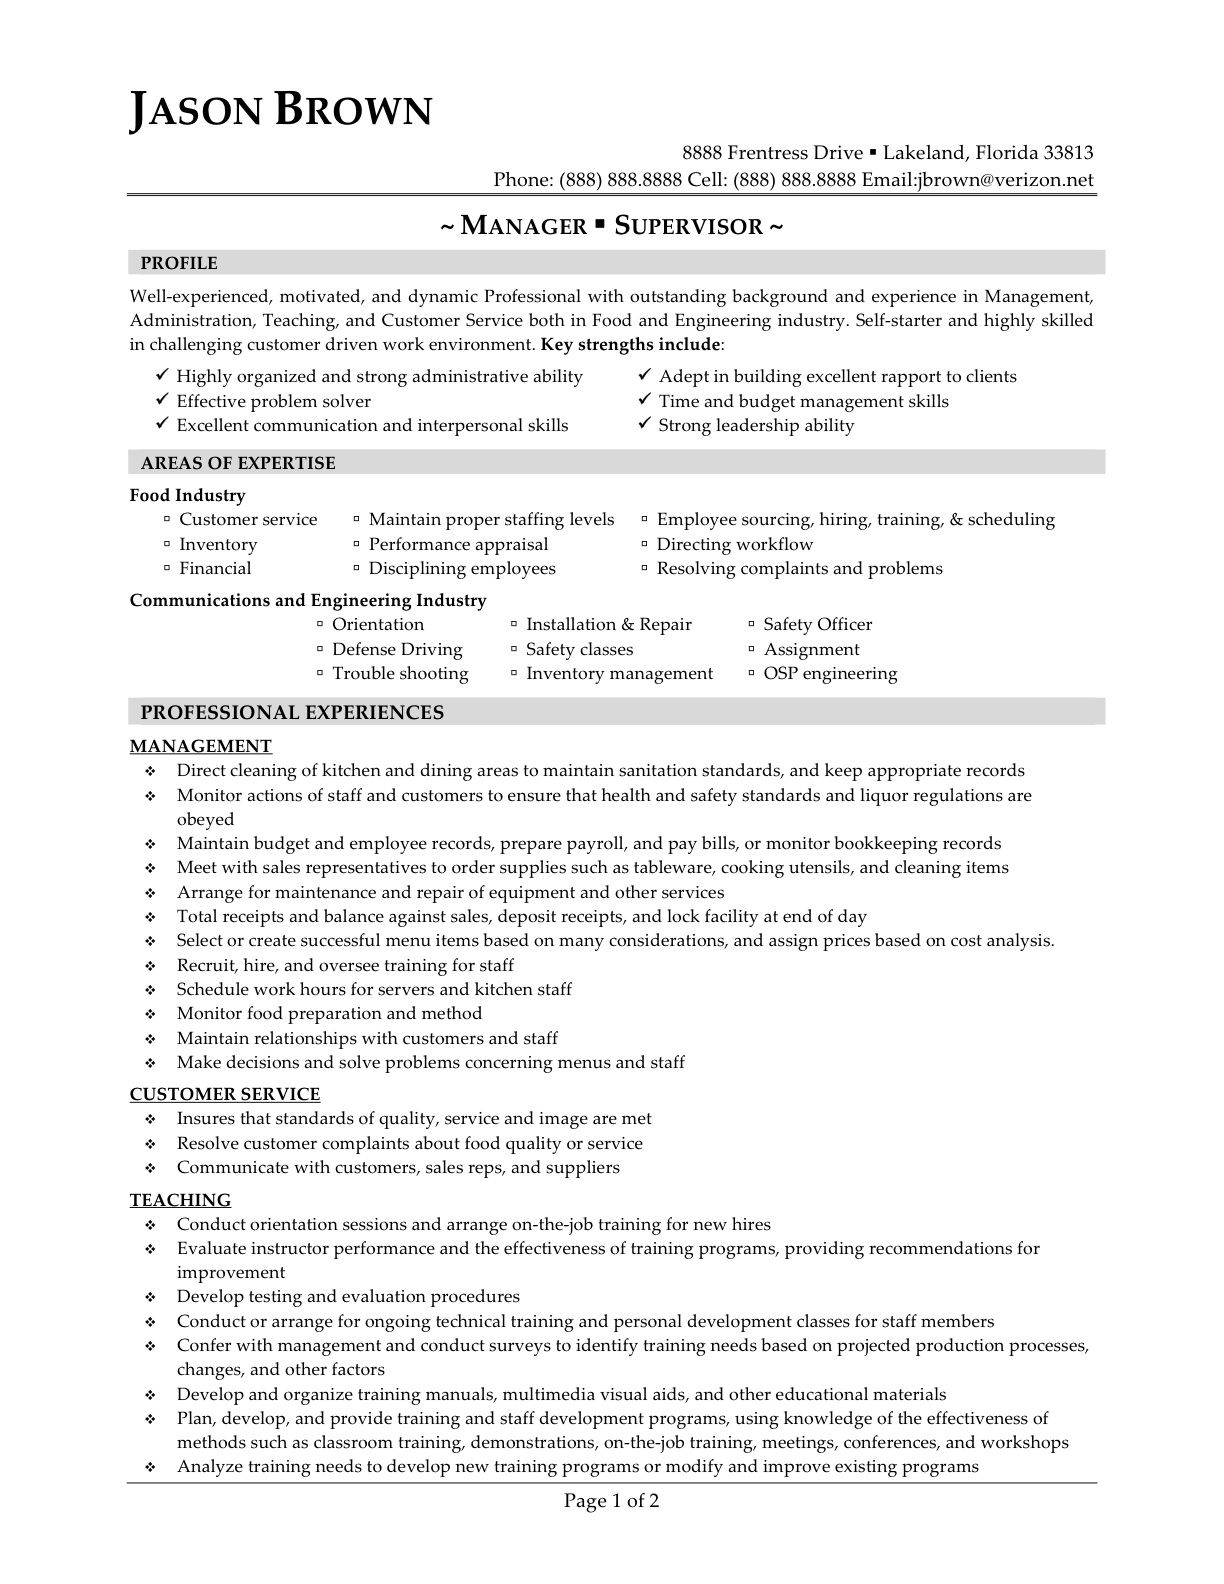 Supervisor Resume Sample Free Call Center Supervisor Resume Sample,  Customer Service Supervisor Resume Sample,  Maintenance Supervisor Resume Sample